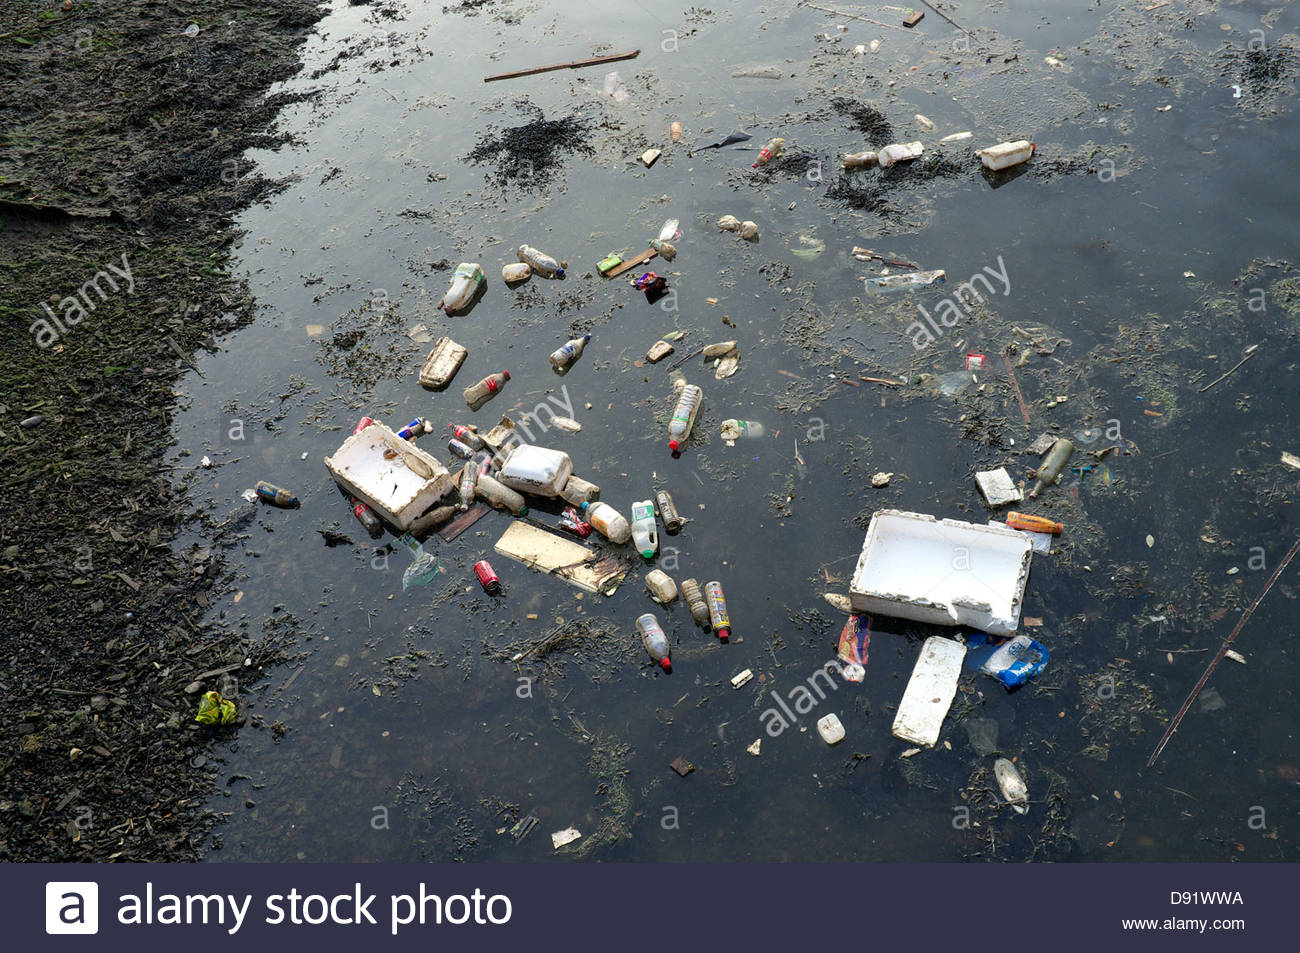 Plastic and polystyrene rubbish in the water of Camber Quay, Portsmouth, Hampshire, UK. - Stock Image